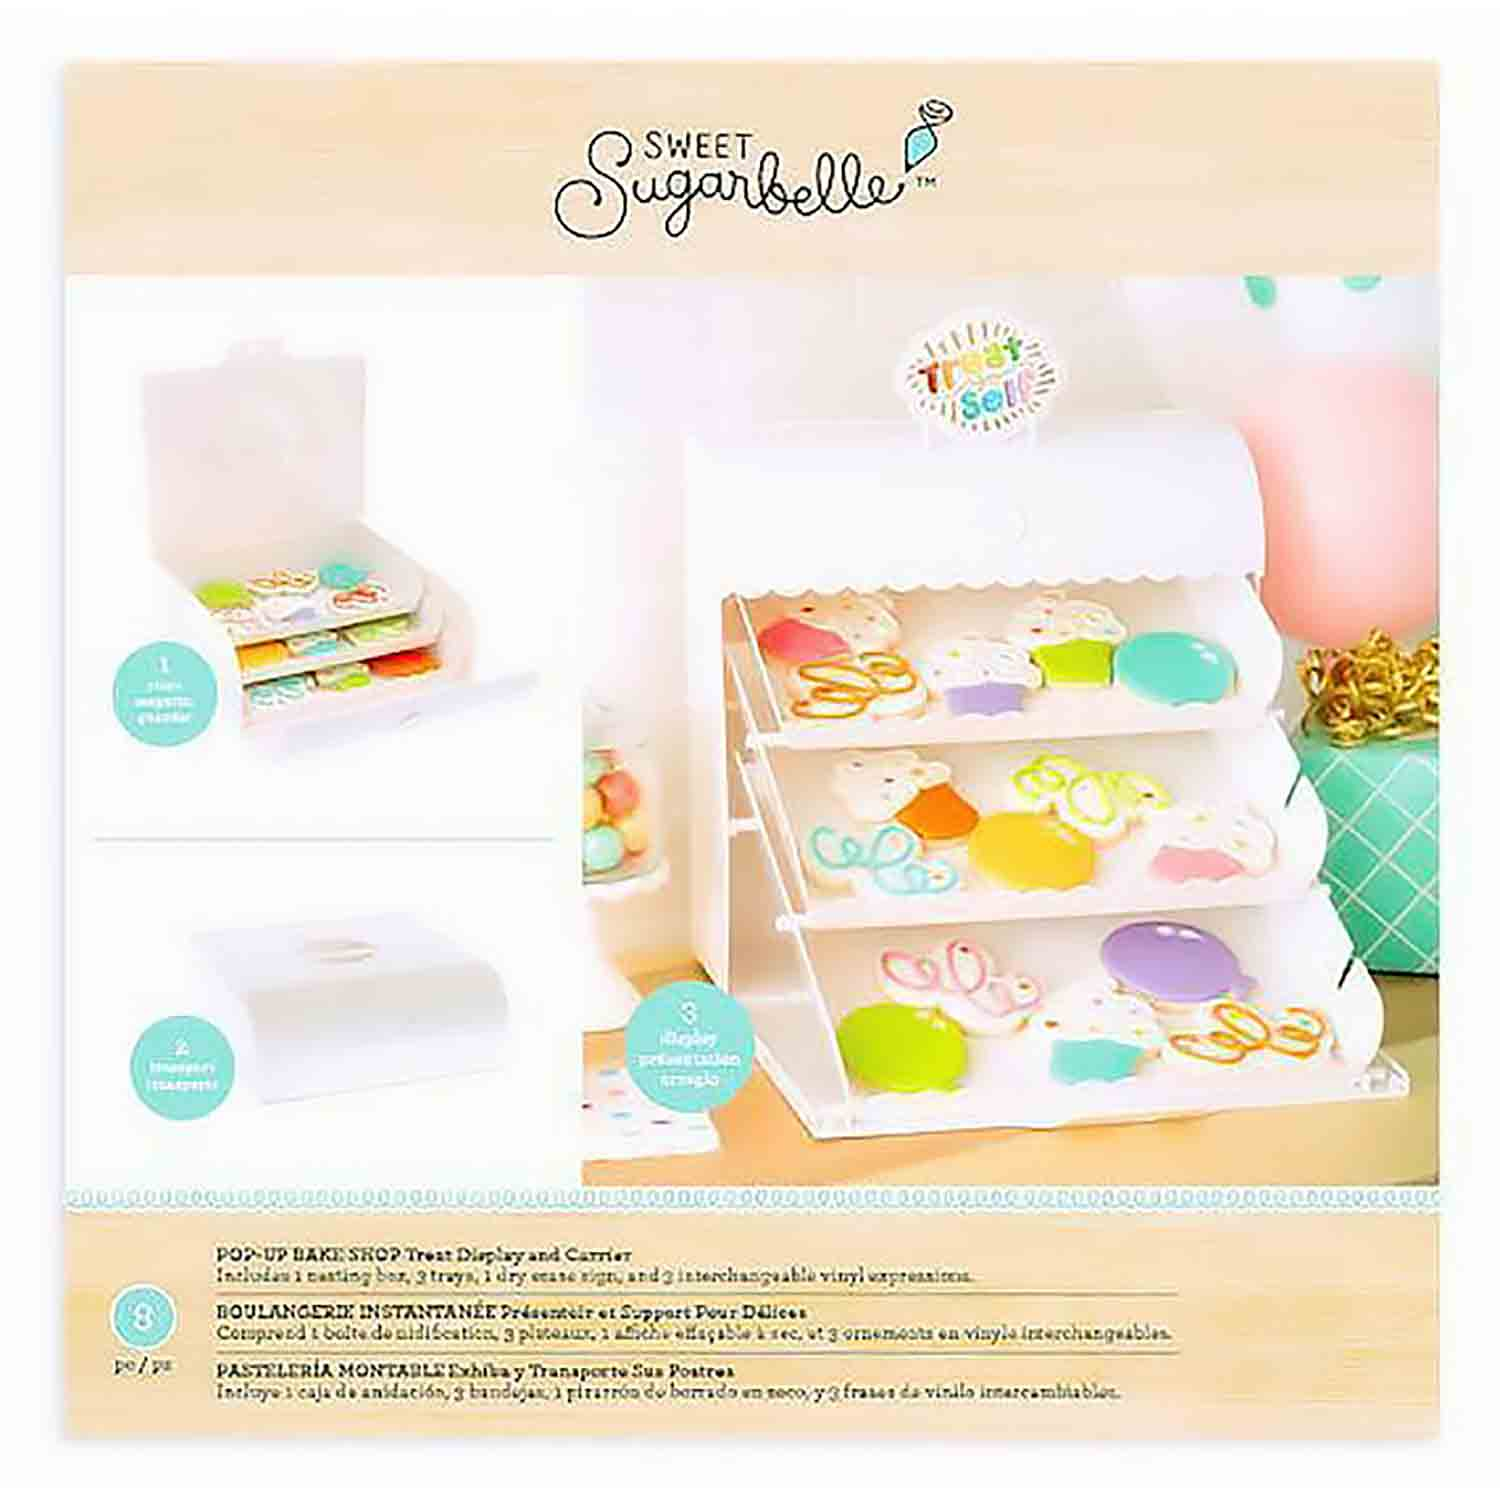 Pop-Up Bake Shop Treat Display and Carrier